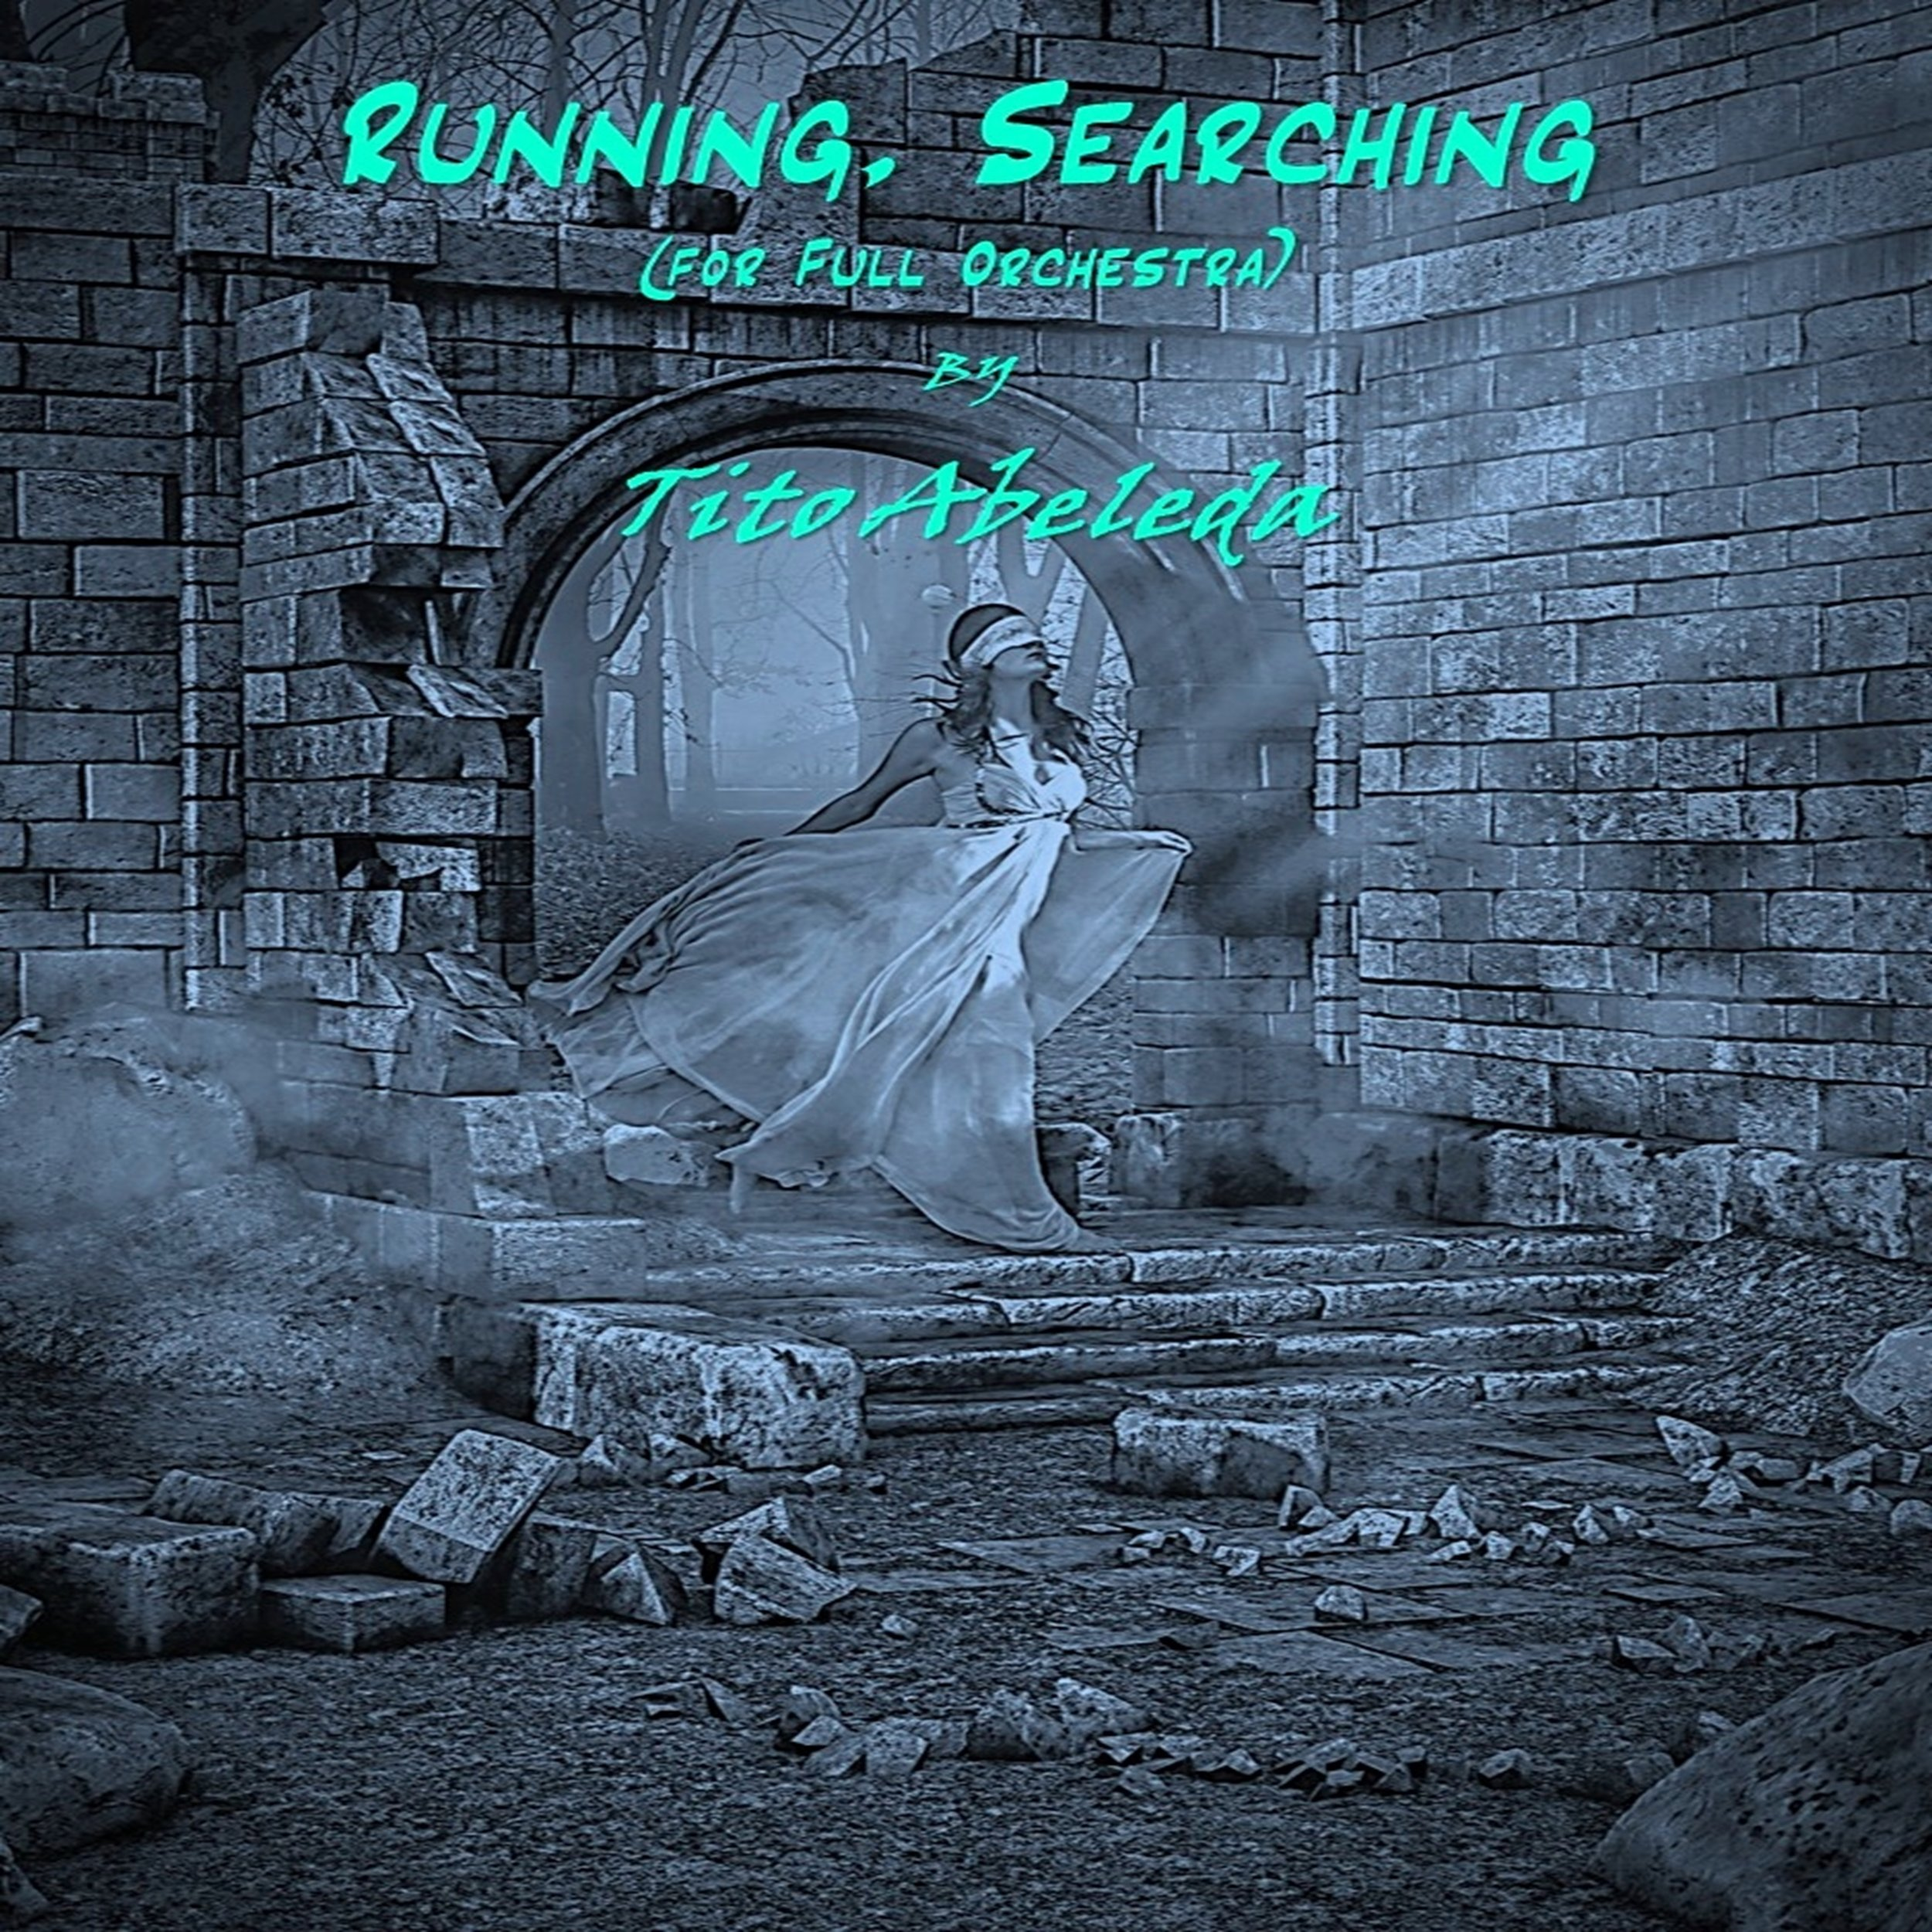 Running, Searching (for Orchestra)